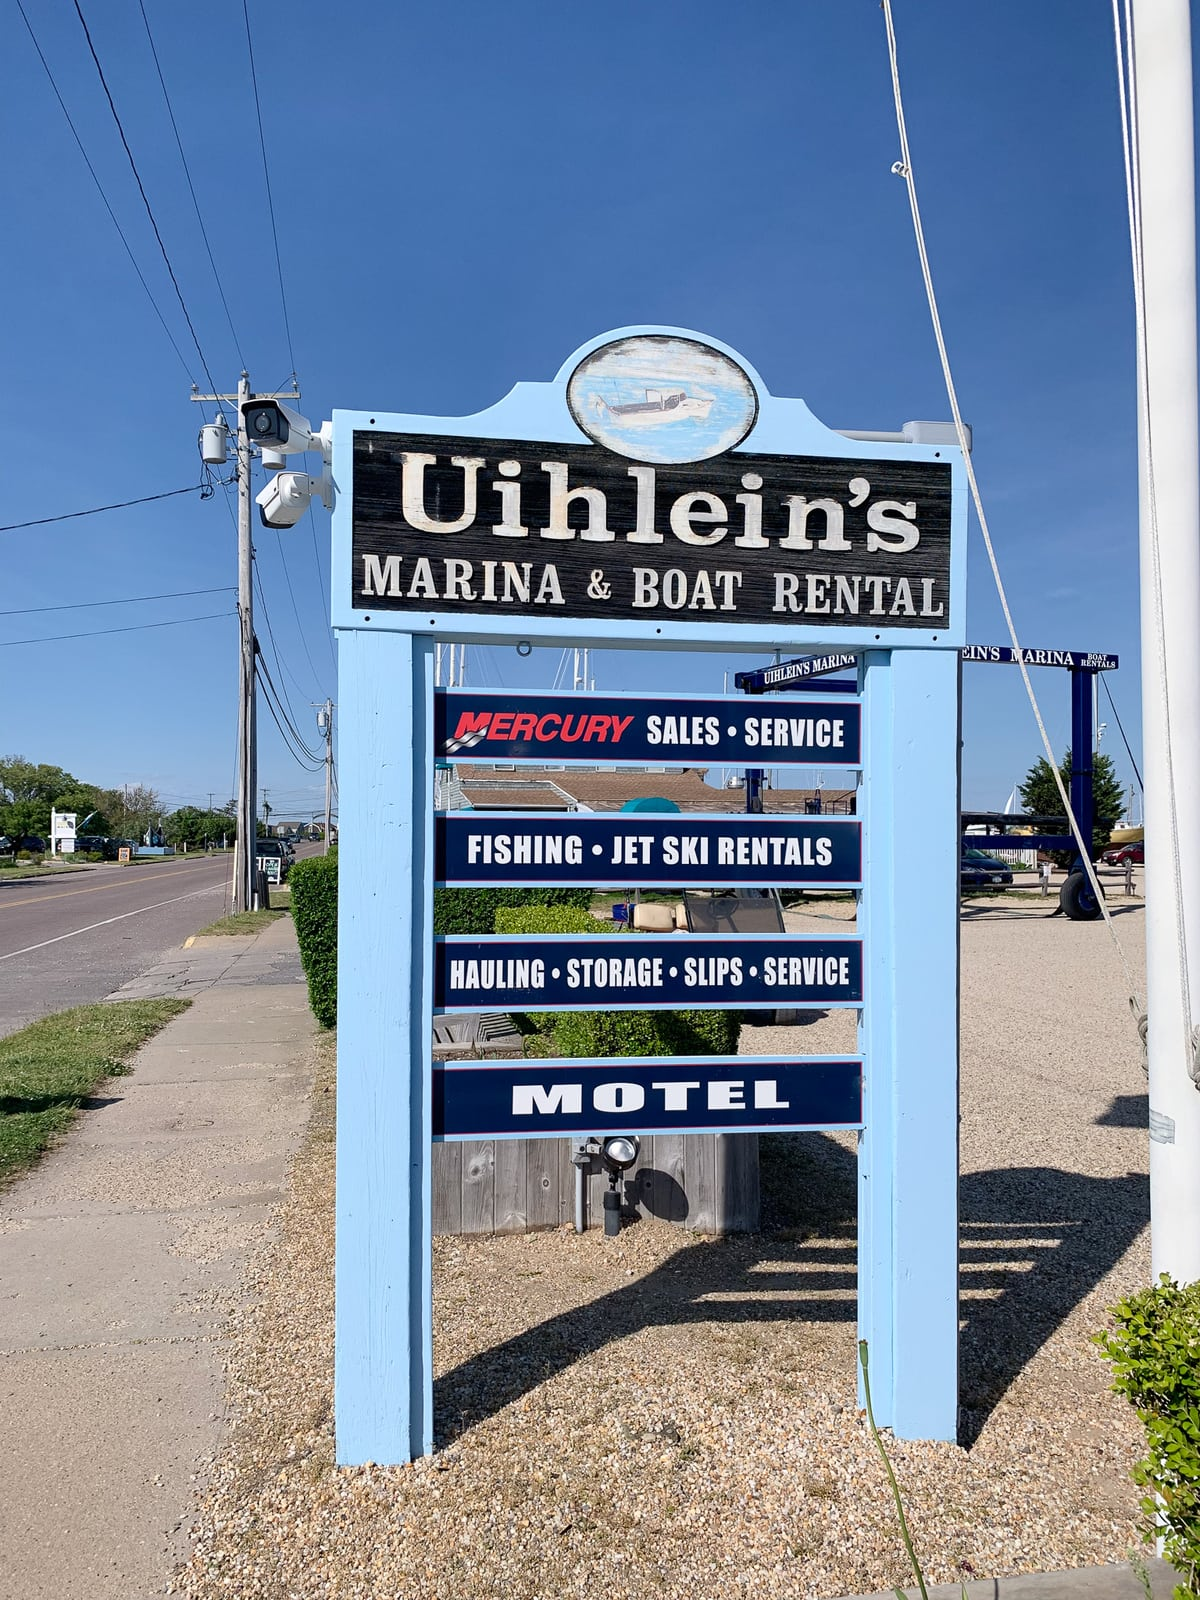 Sign for Uihlein's Marina and Boat Rental